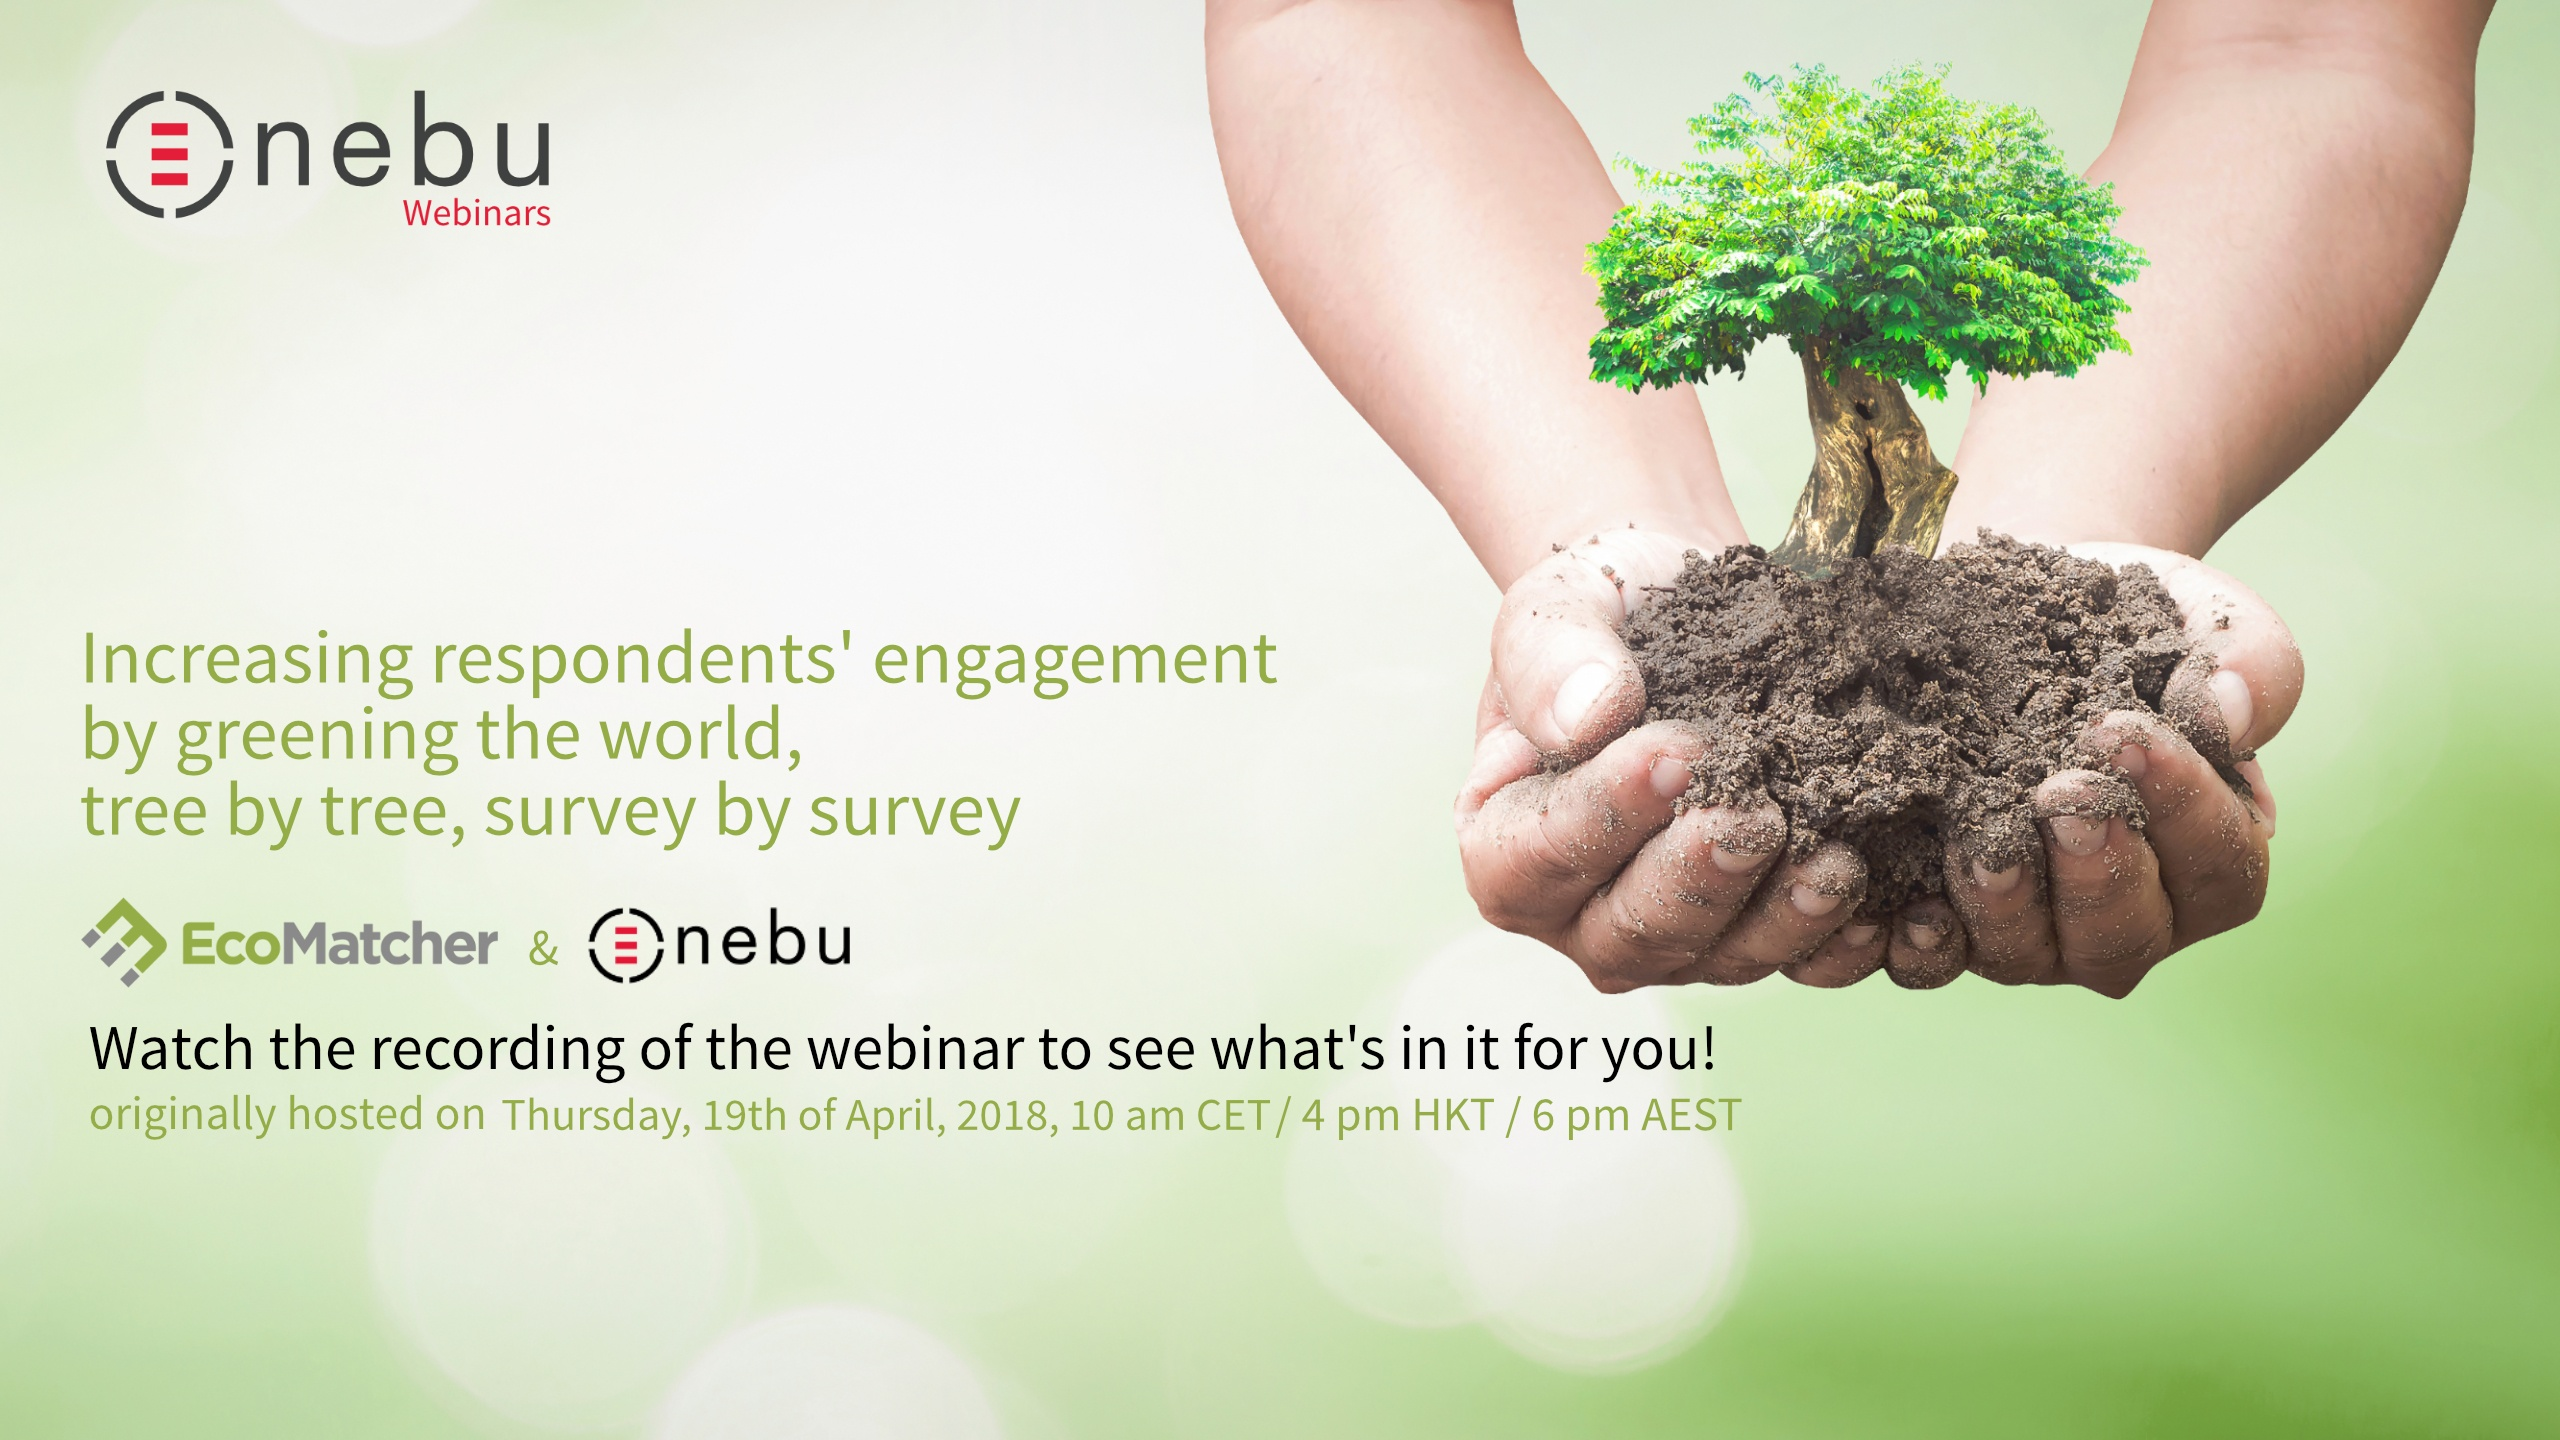 Watch the recording of Nebu's webinar focused on increasing respondents' engagement by greening the world, tree by tree, survey by survey with EcoMatcher!